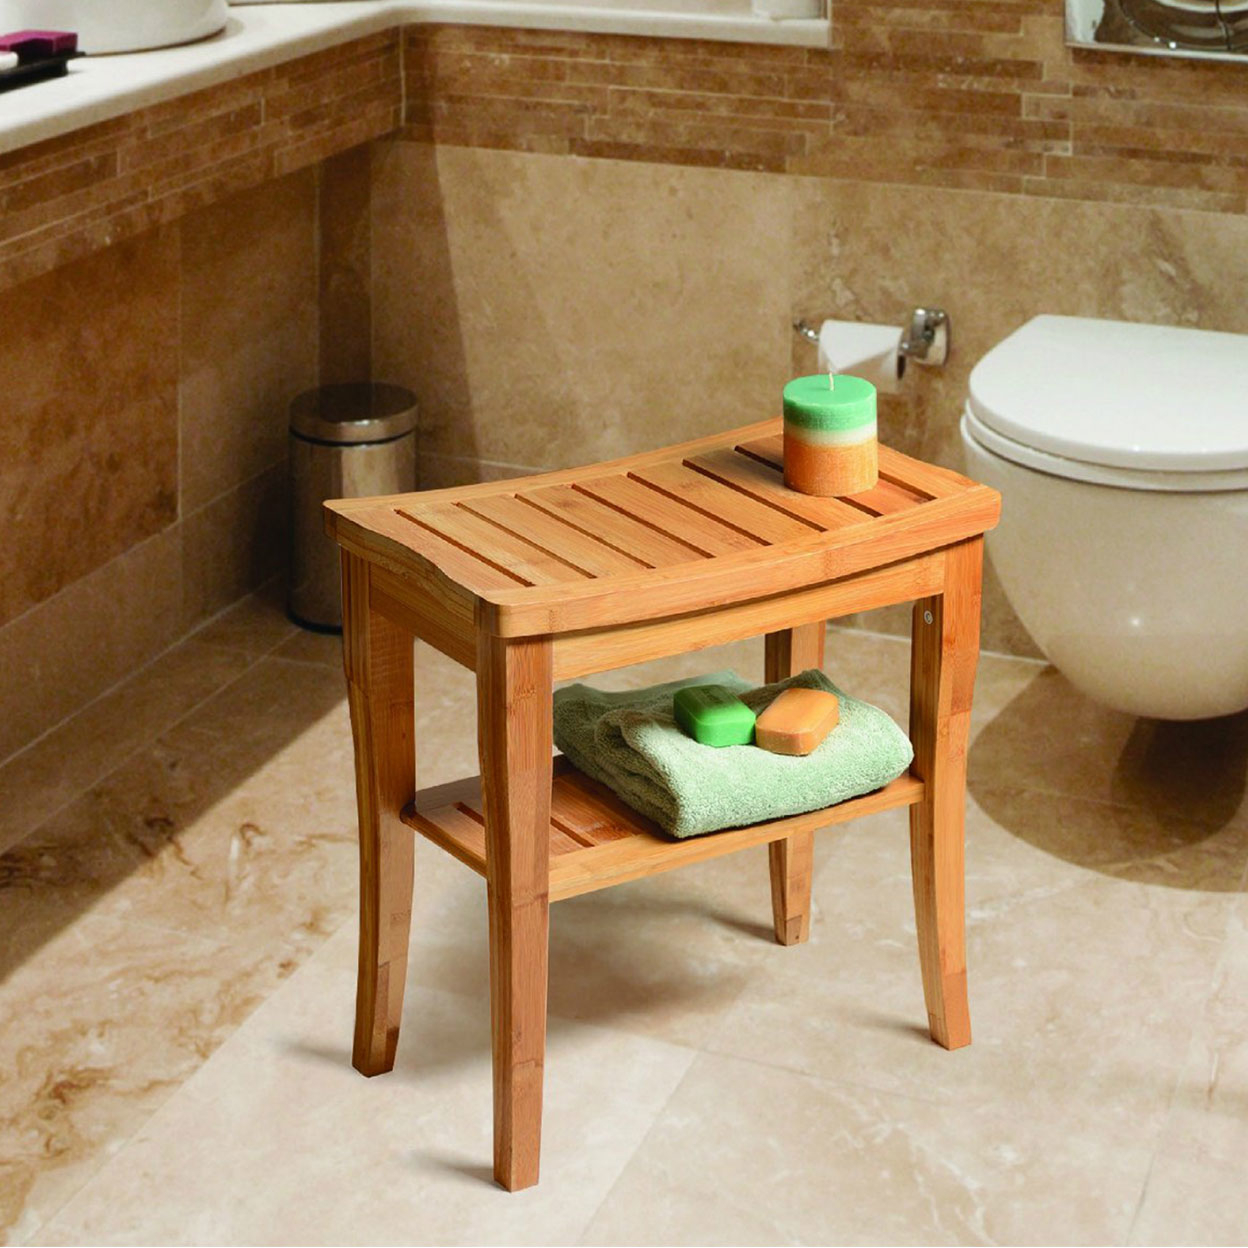 Bamboo Shower Seat Bench with Storage Shelf for Indoor or Outdoor Use By Belmint 59b9aaa22a00e46d8e71d6f8